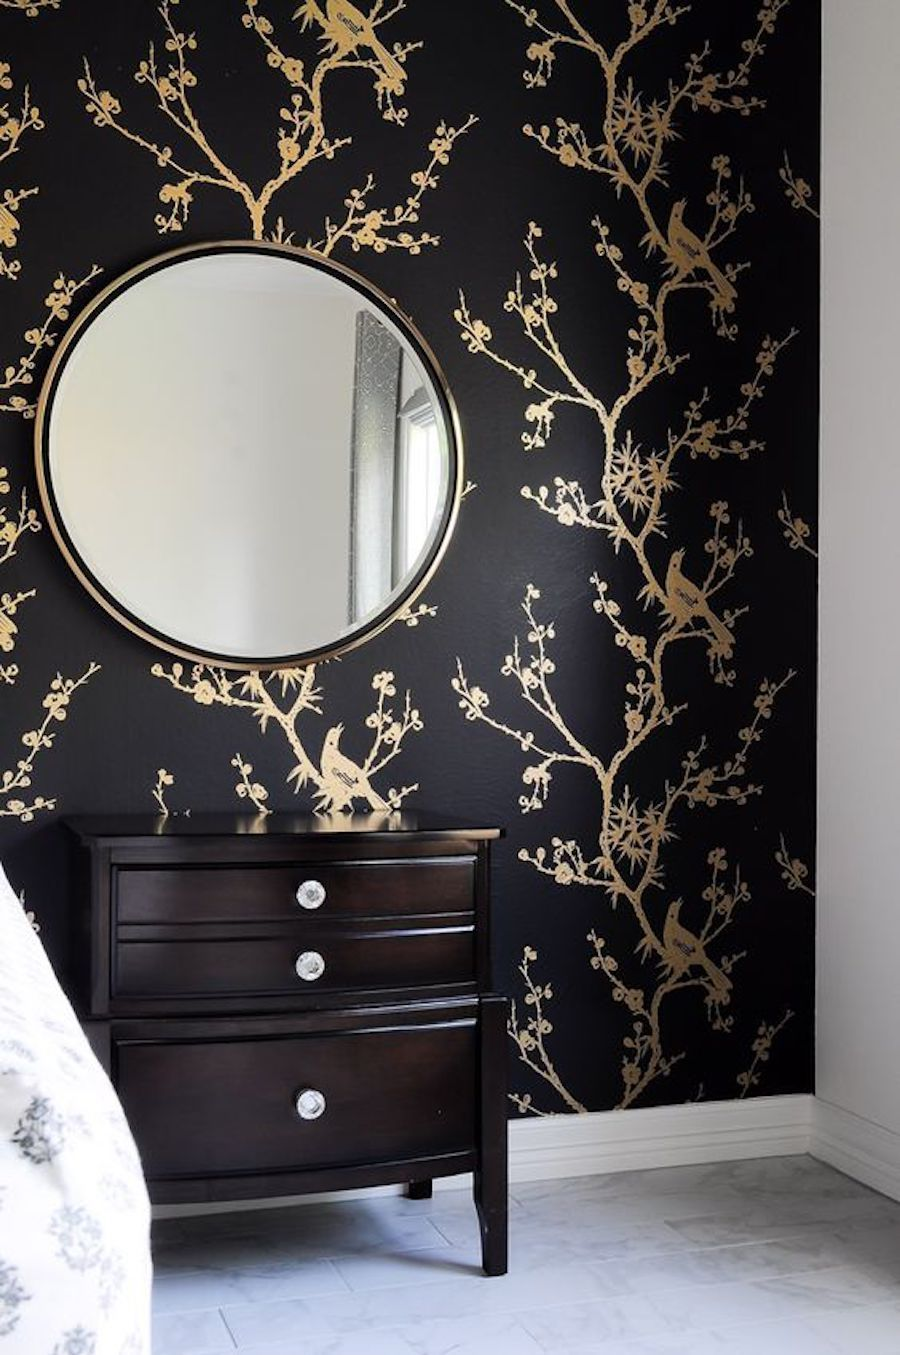 15 Seductive Black Gold Bedrooms Ideas For The Modern Home Black Gold Bedroom Black Wallpaper Bedroom Gold Bedroom